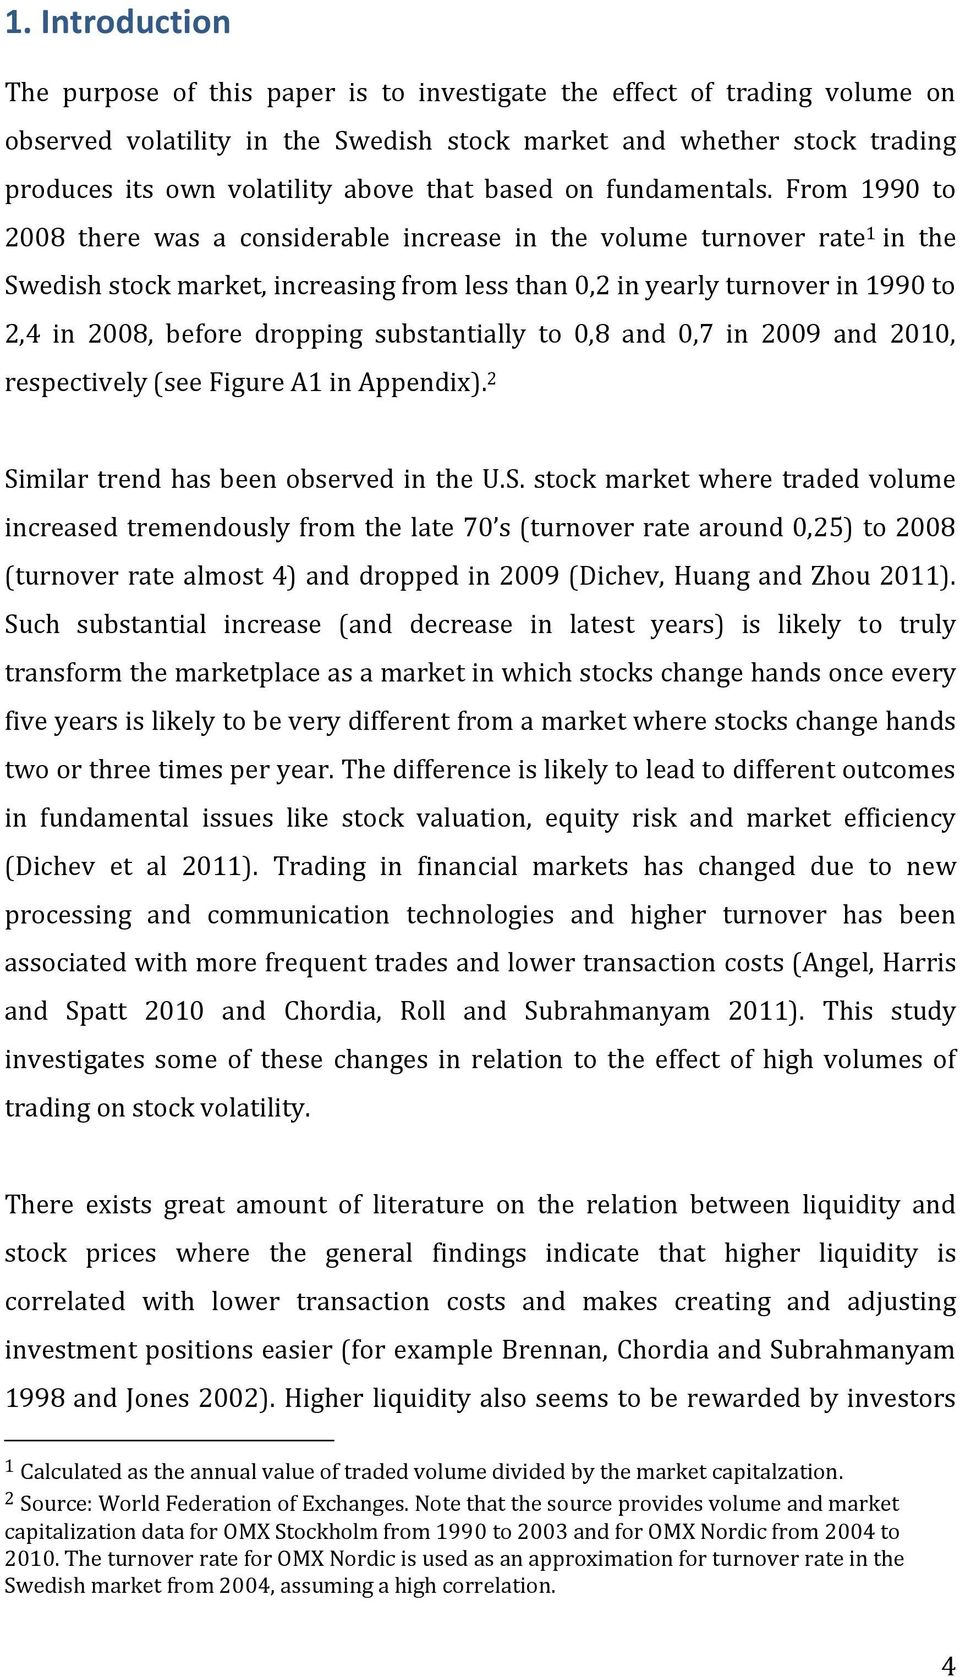 From 1990 to 2008 there was a considerable increase in the volume turnover rate 1 in the Swedish stock market, increasing from less than 0,2 in yearly turnover in 1990 to 2,4 in 2008, before dropping